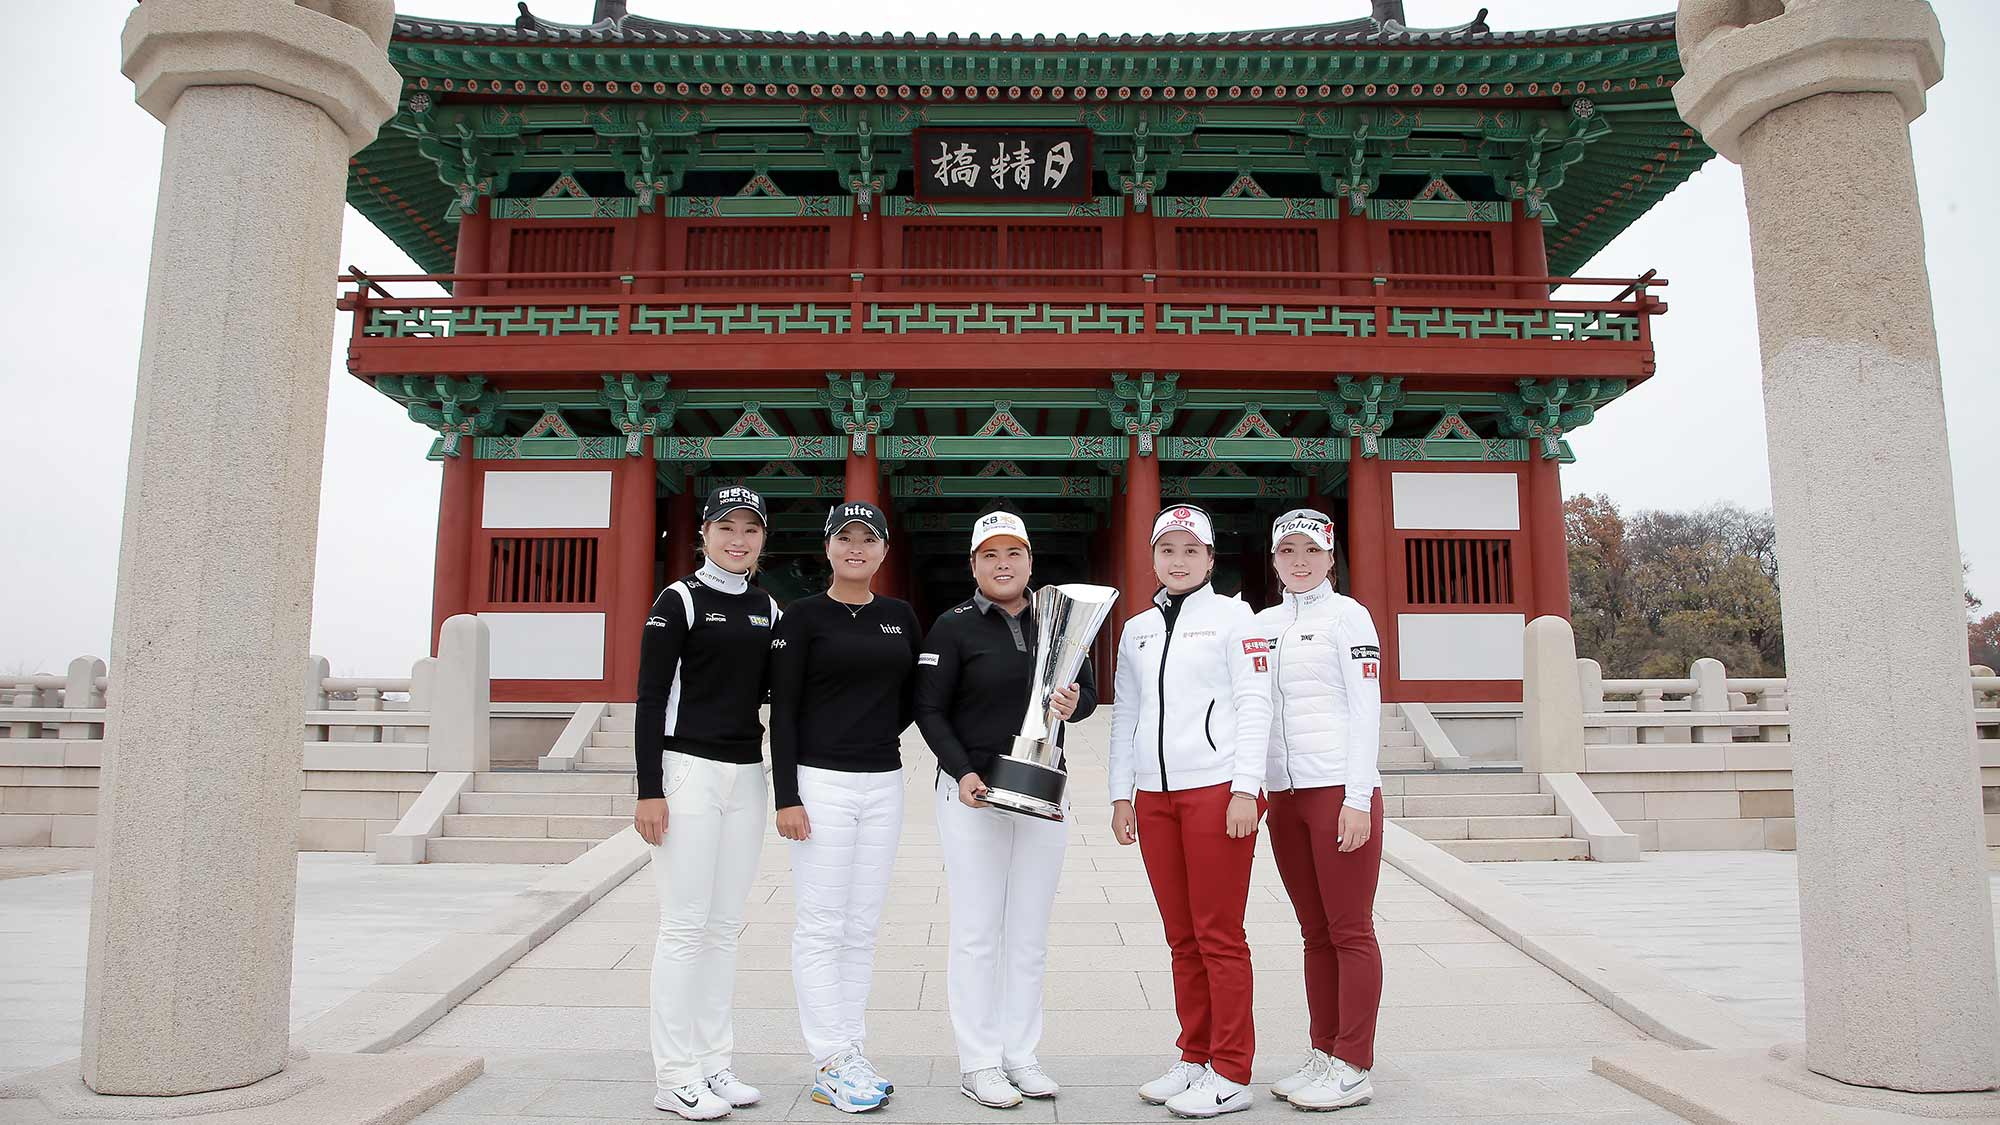 Jeongeun Lee6, Jin Young Ko, Inbee Park and members of the KLPGA pose for a photo during the Orange Life Champions Trophy Inbee Park Invitational at Blue One The Honors Country Club in Gyeongju, Republic of Korea